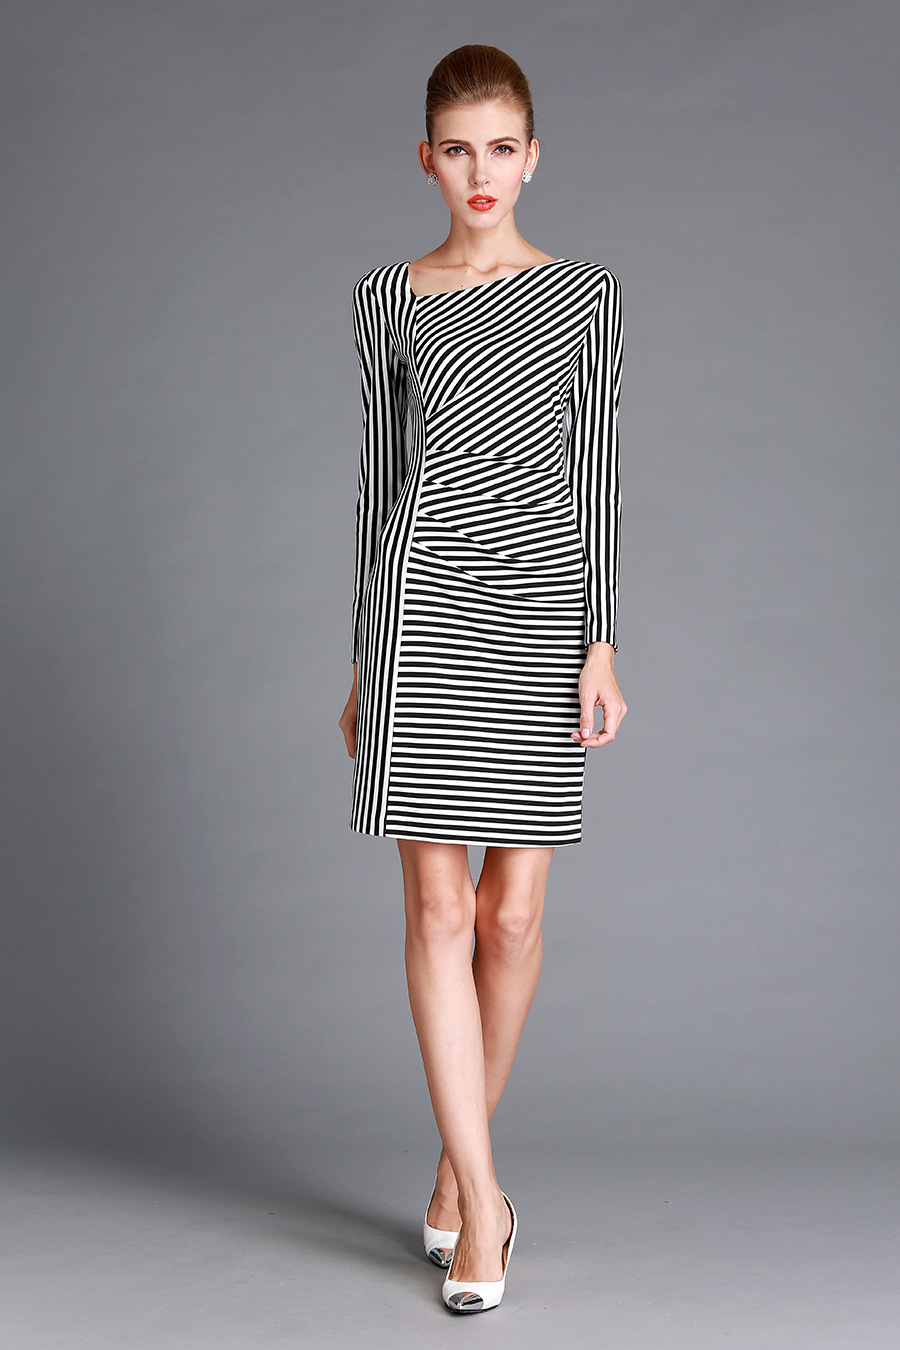 US $39 0 |autumn winter beautiful classical striped dresses women's midi  length good quality wholesale from the manufacturer from China -in Dresses